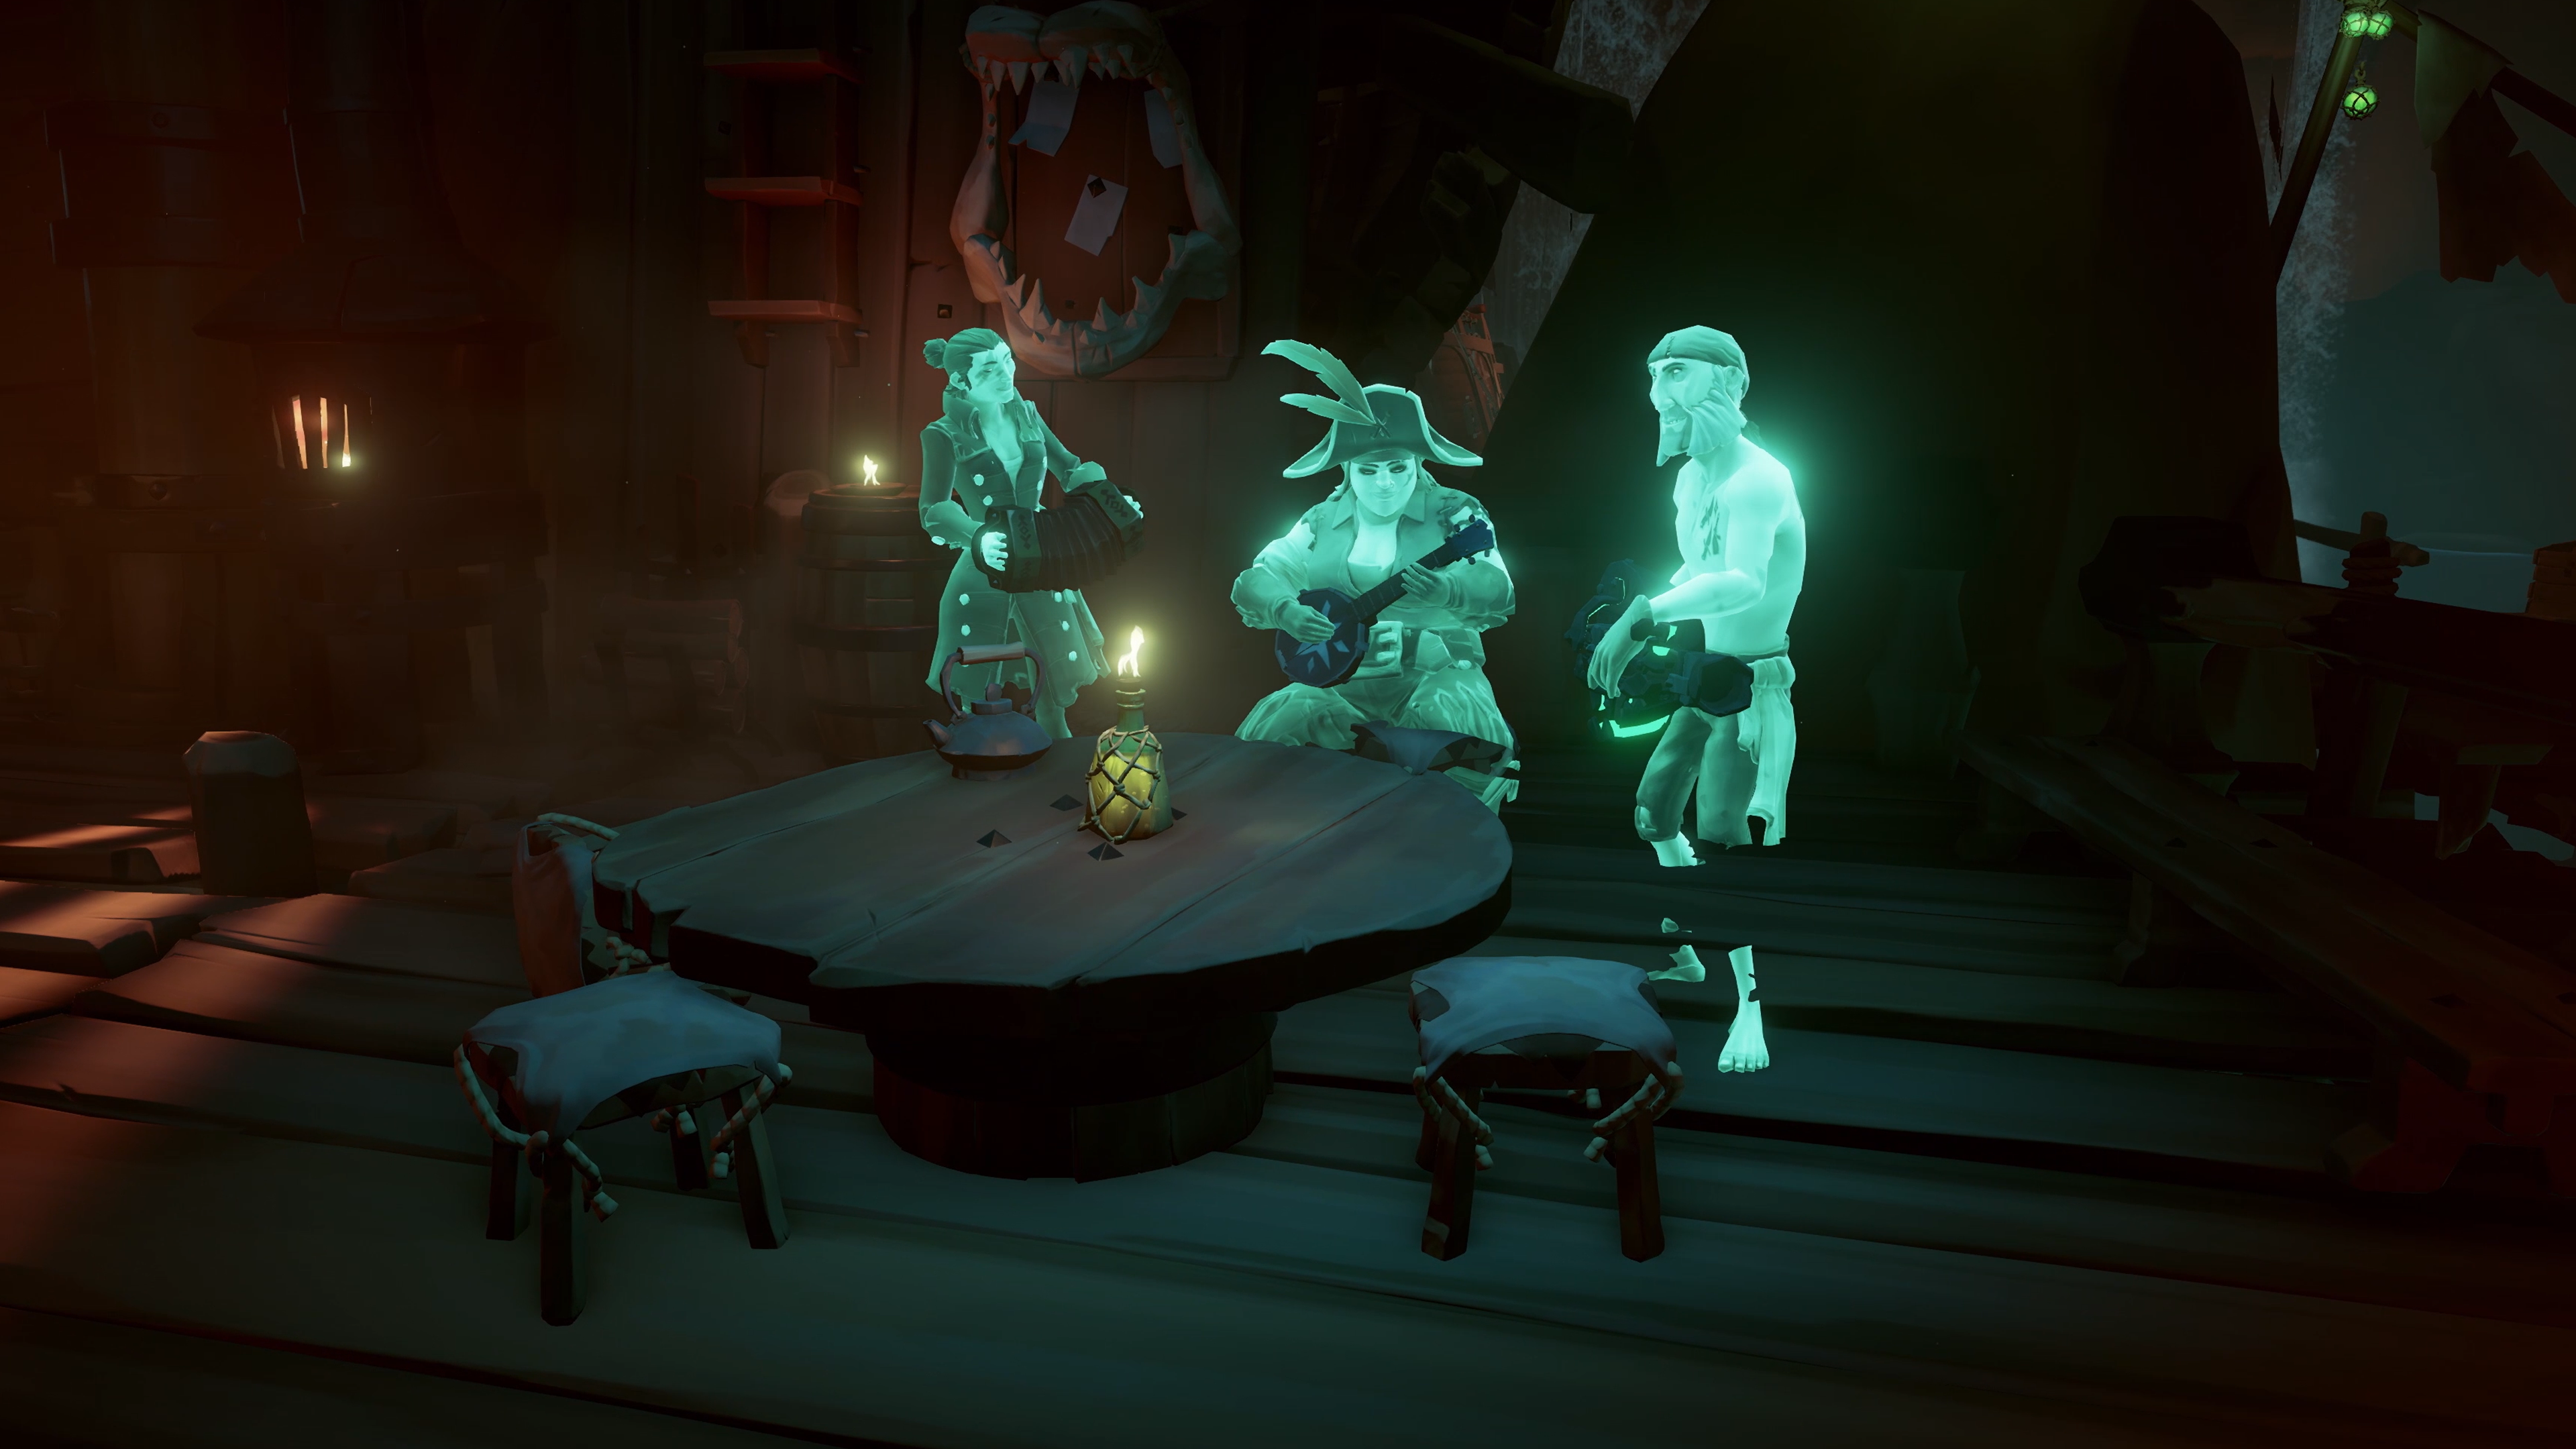 Sea of Thieves Mysterious Stranger Guide - Where to Find the